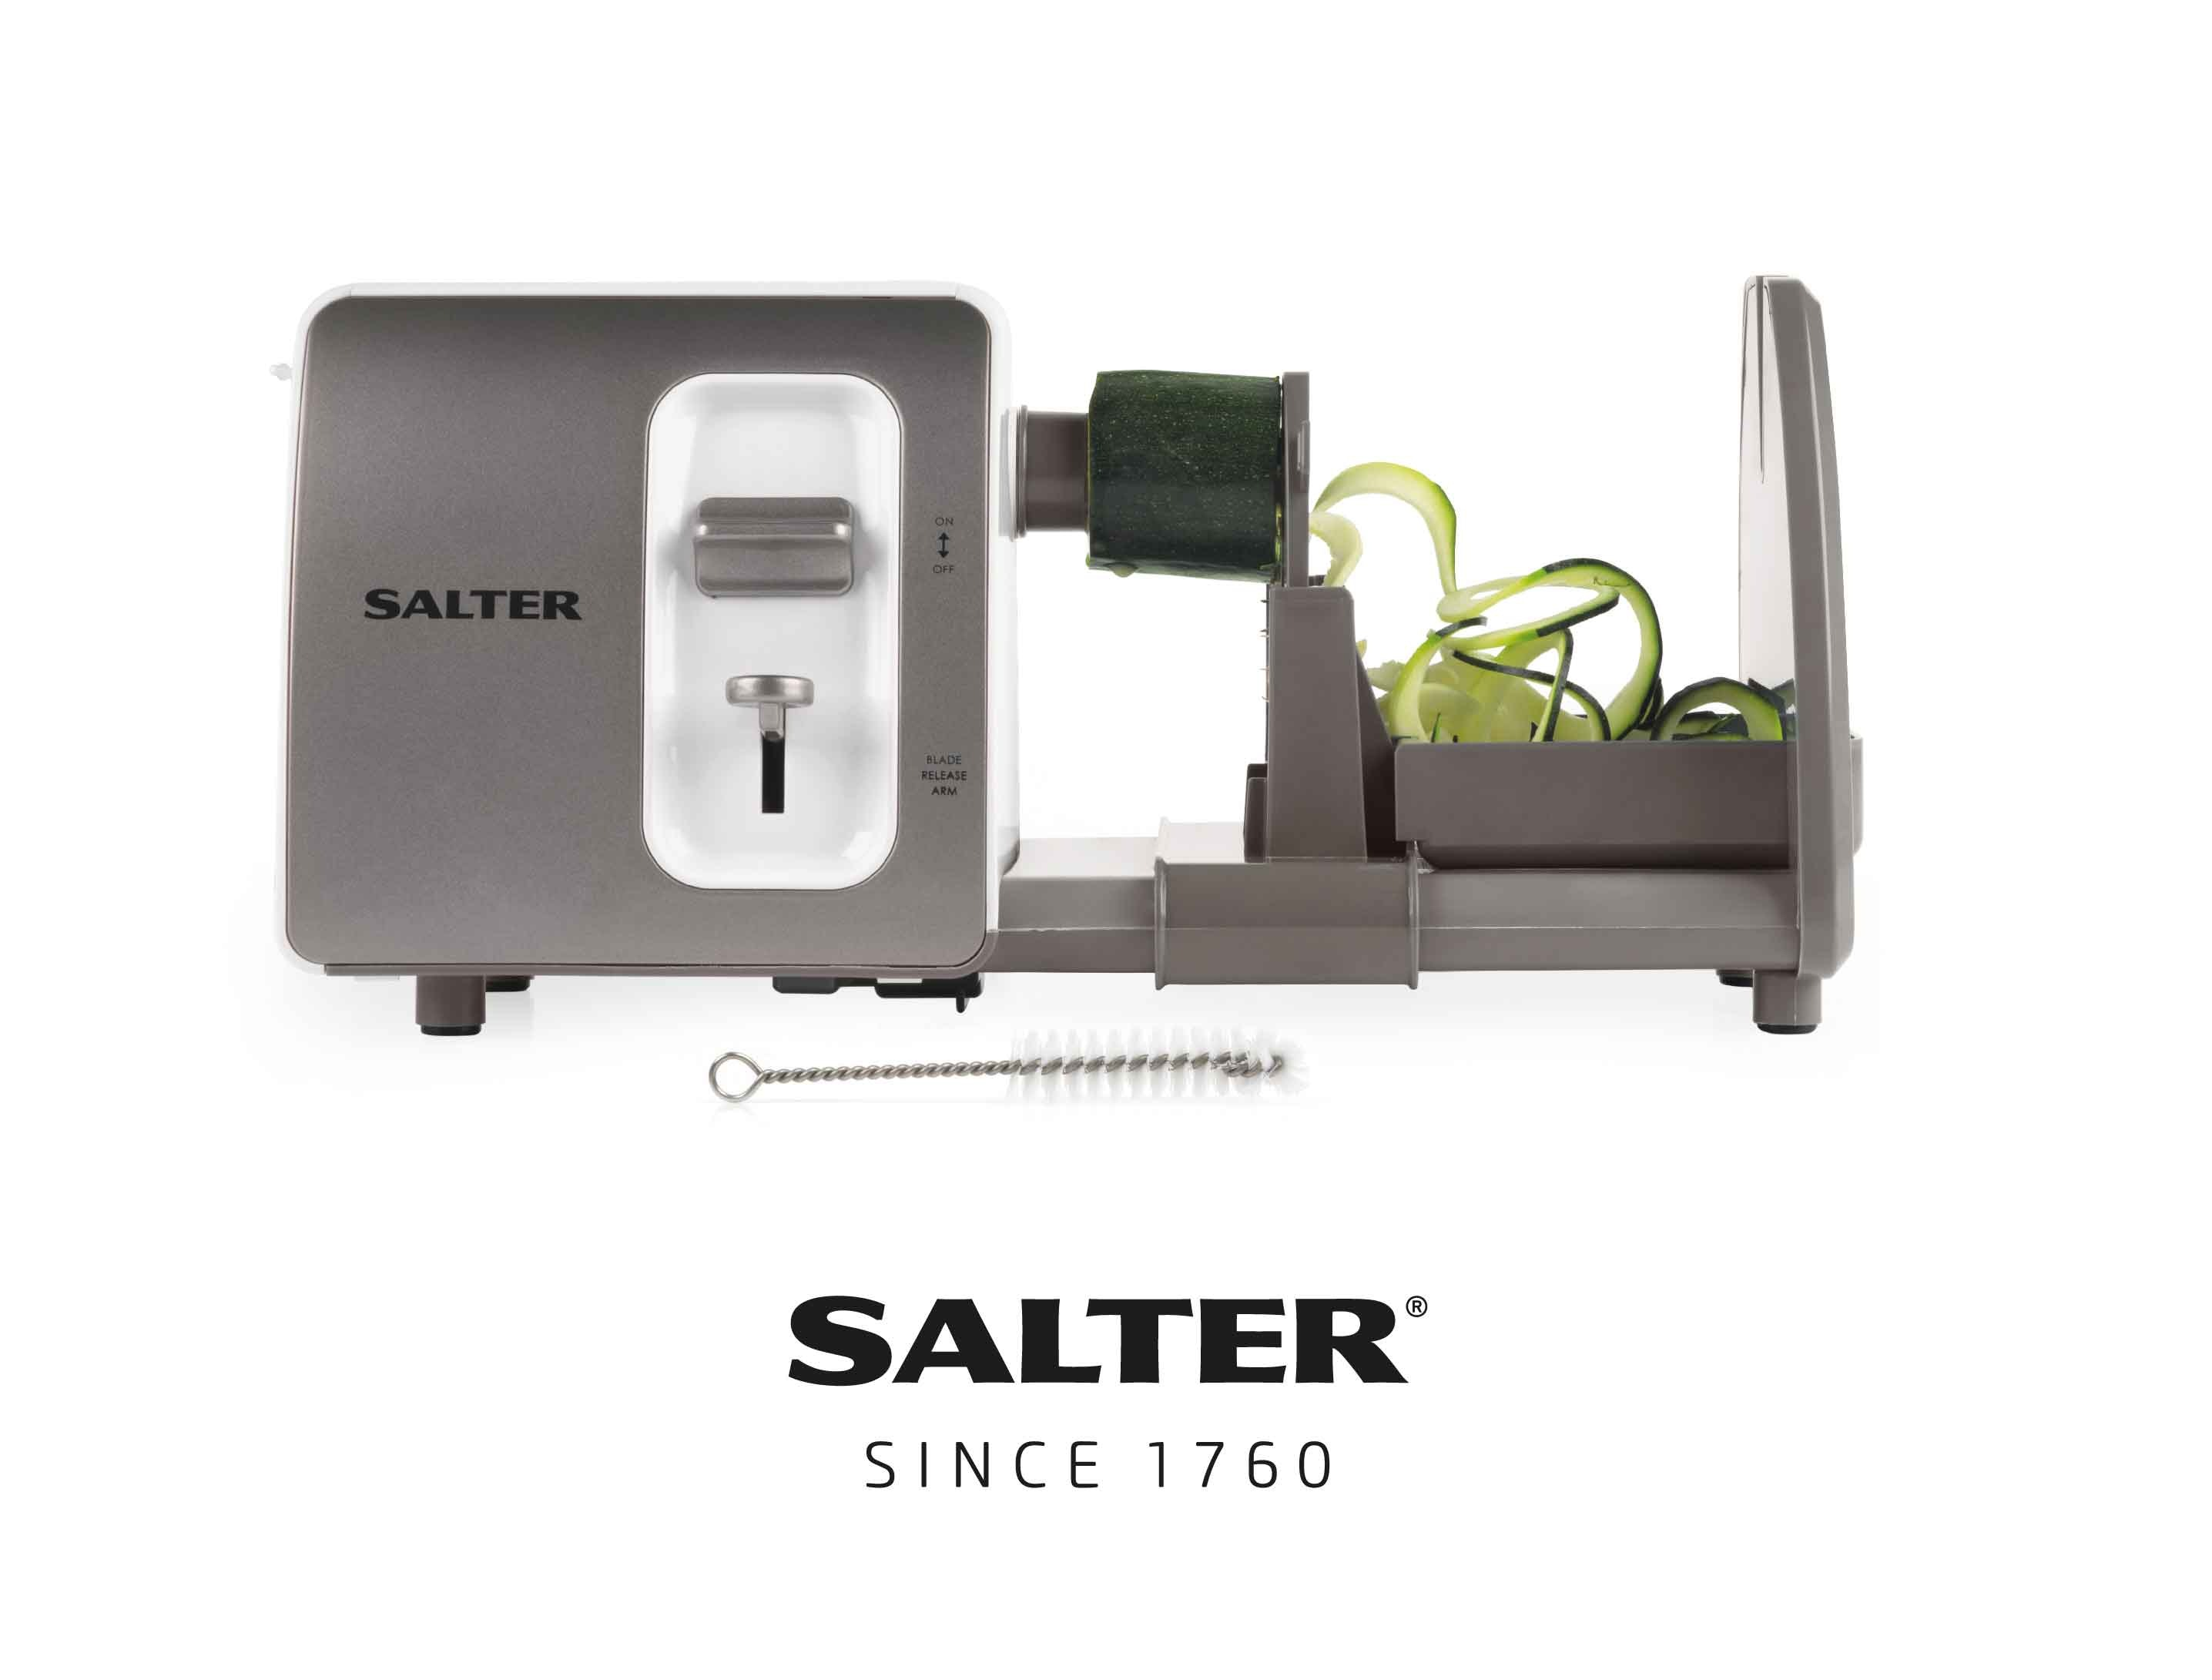 ELECTRIC SPIRALIZER sweepstakes